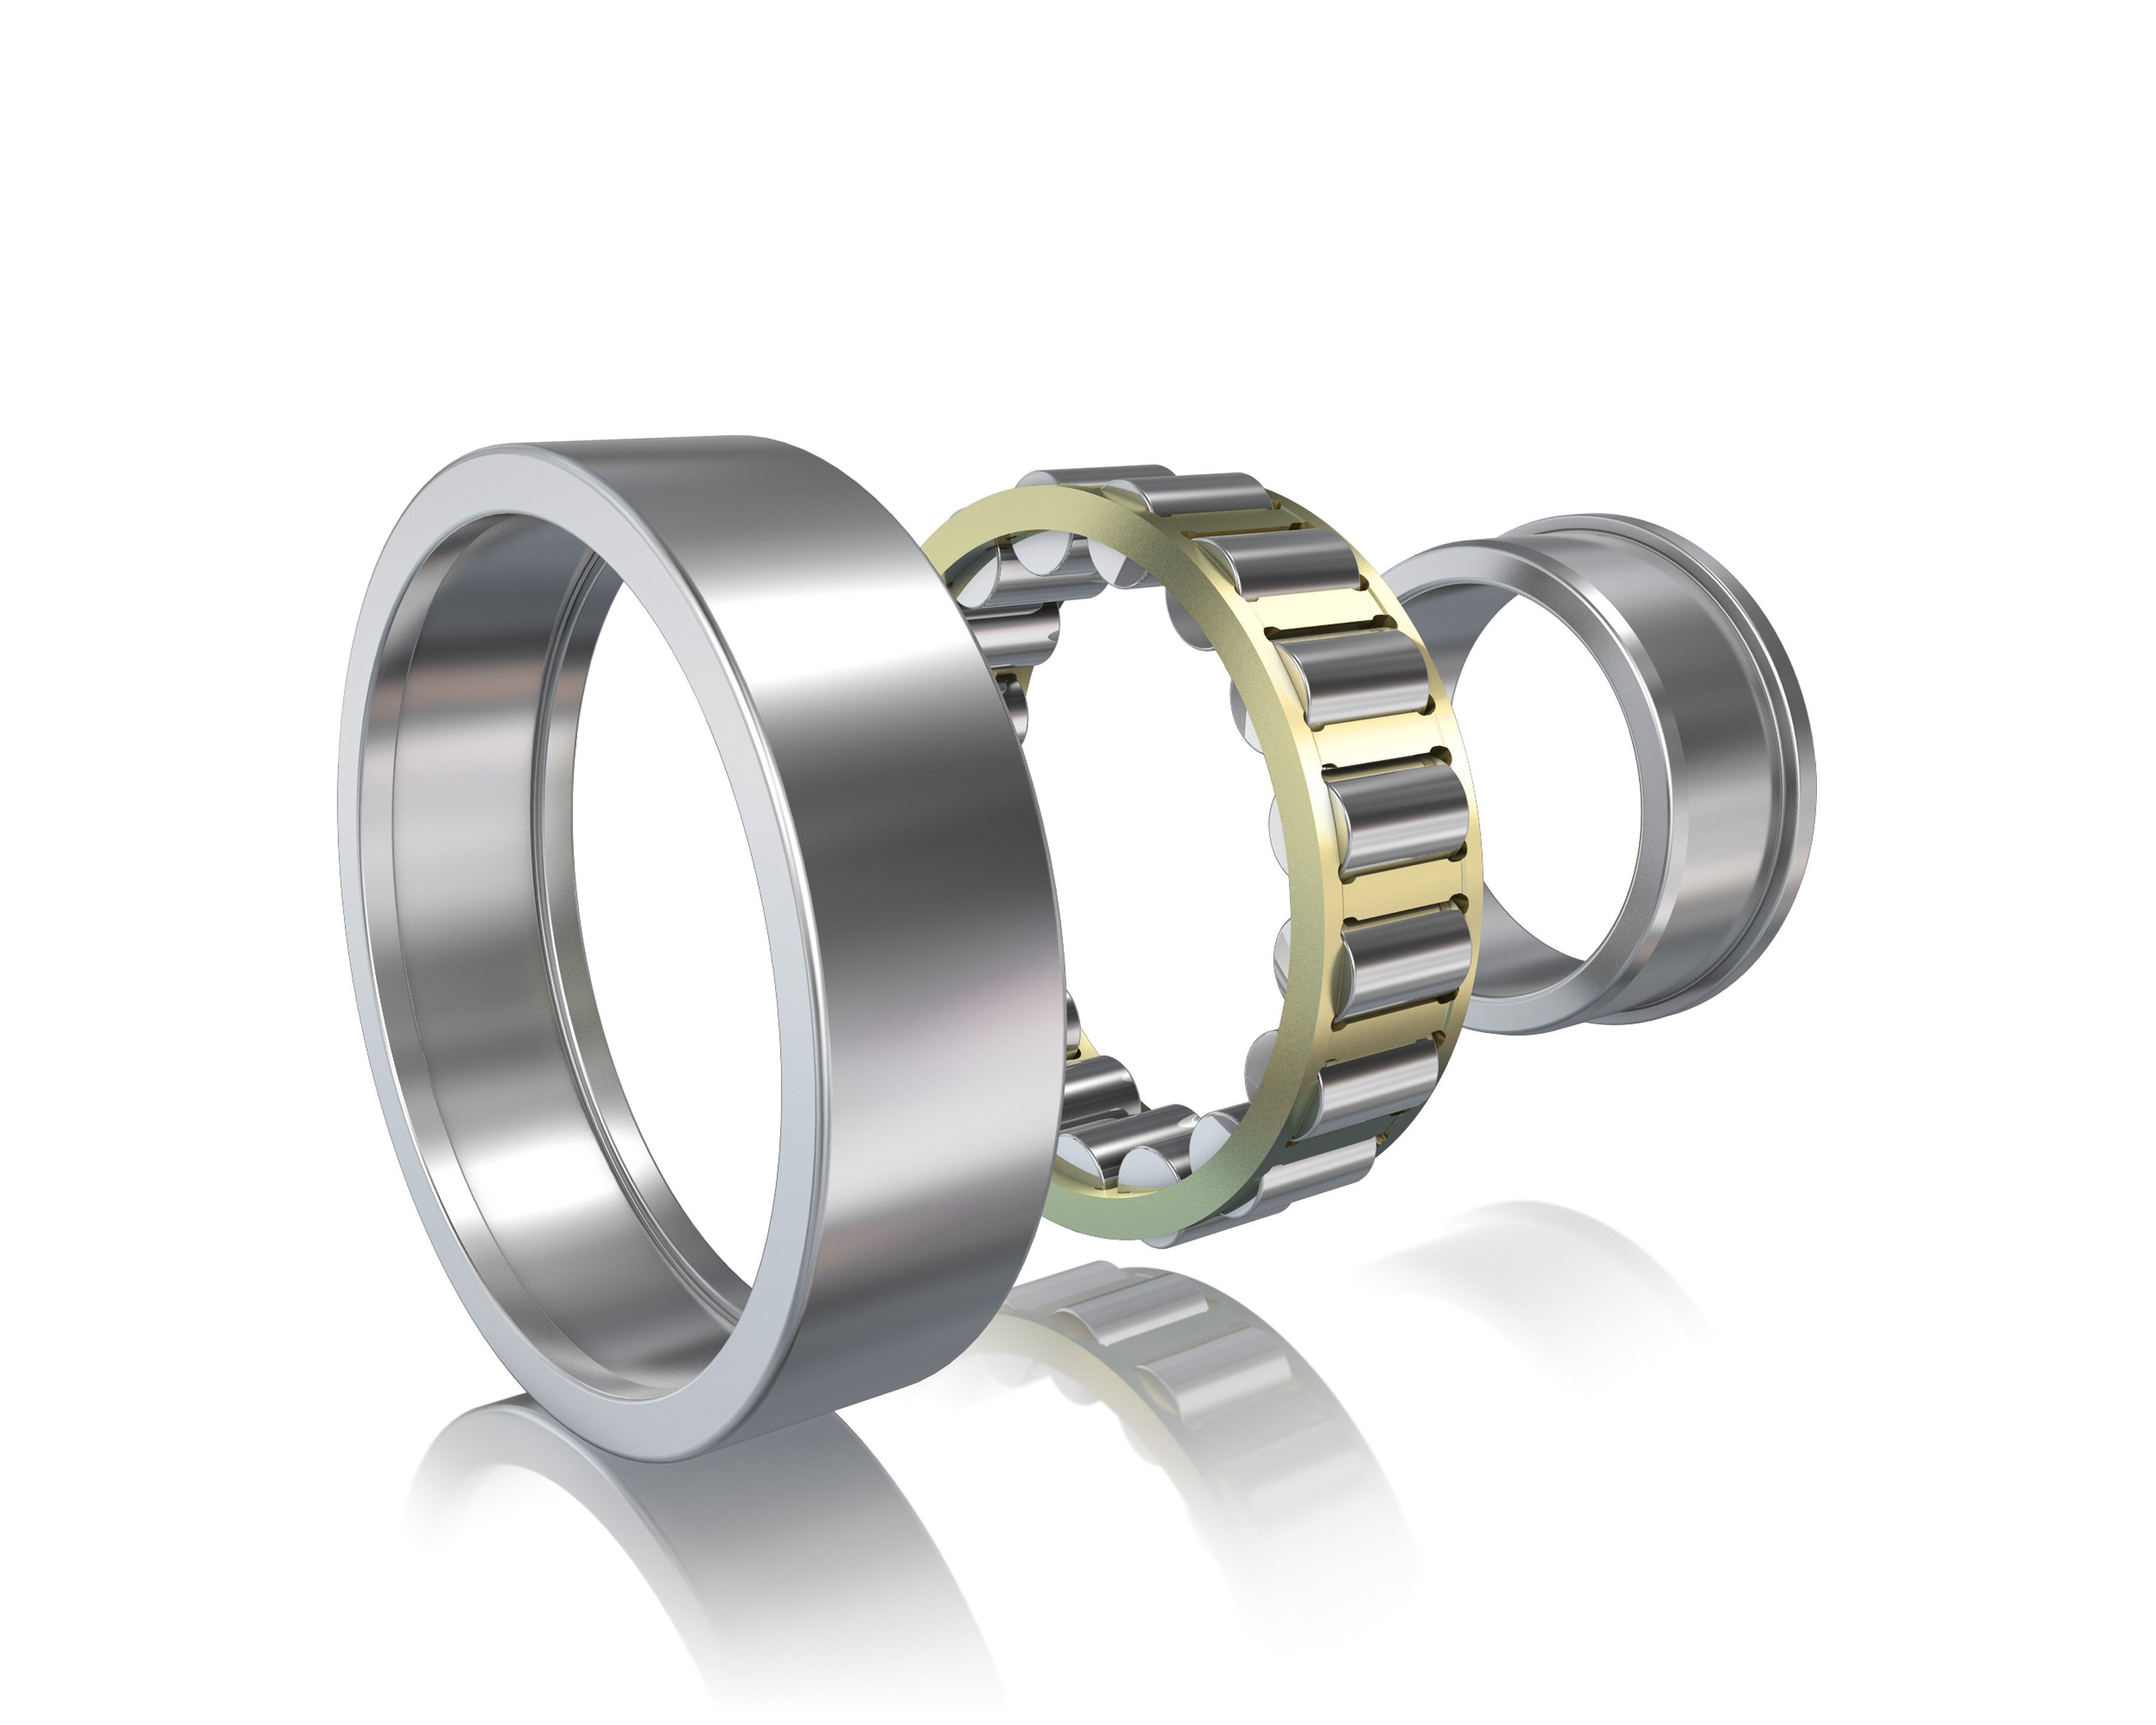 NJ2209-ECP-C3-SKF, Bearings, Cylindrical roller bearings